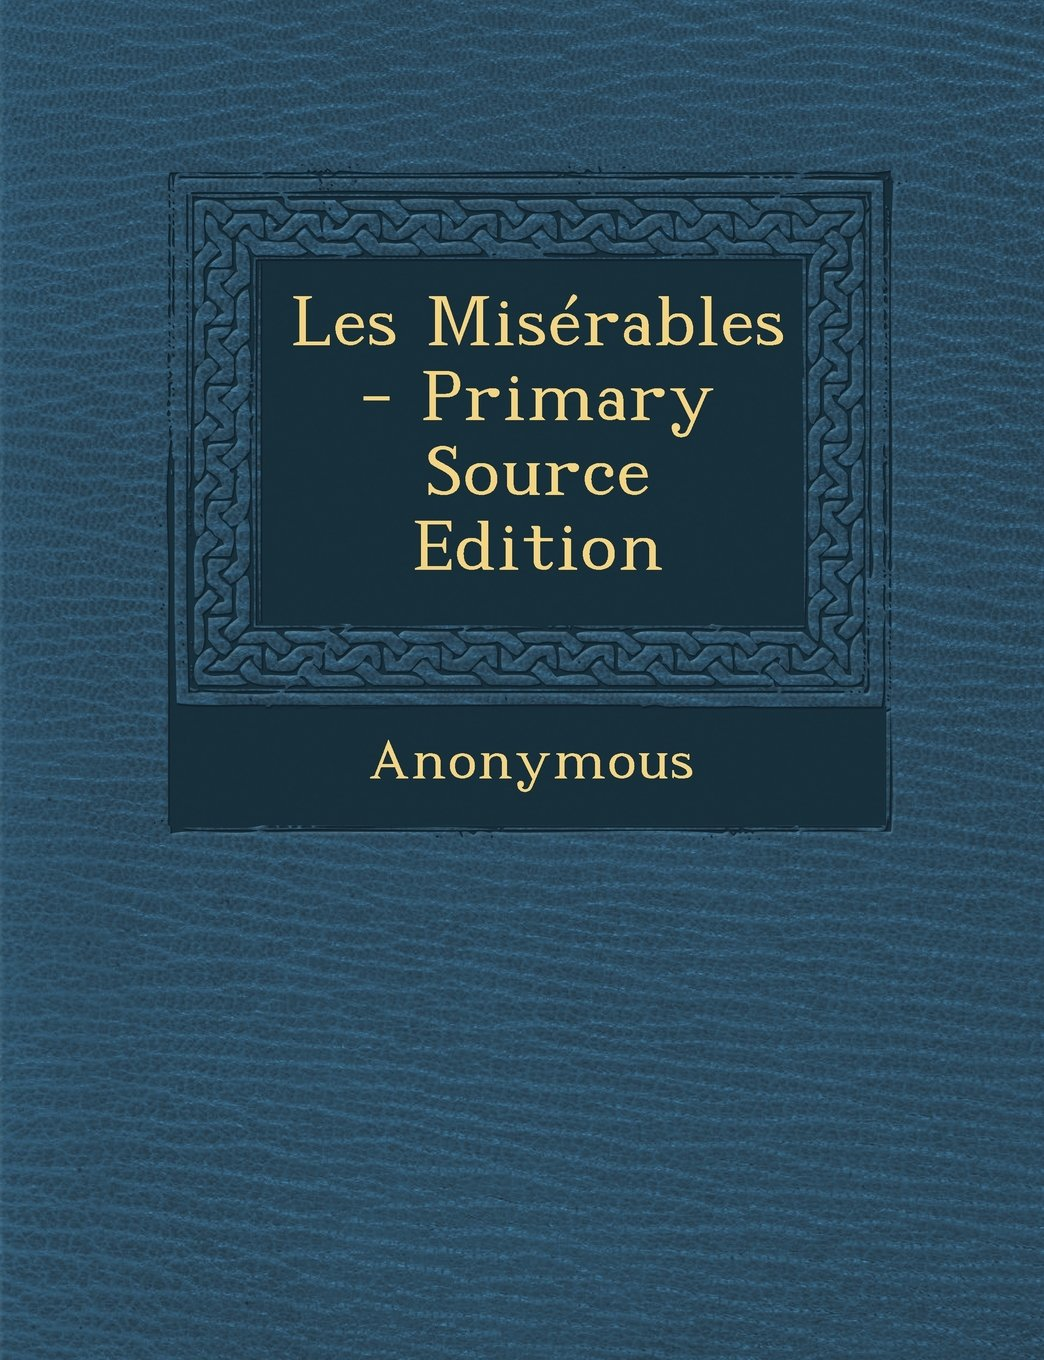 Download Les Misérables - Primary Source Edition (French Edition) PDF